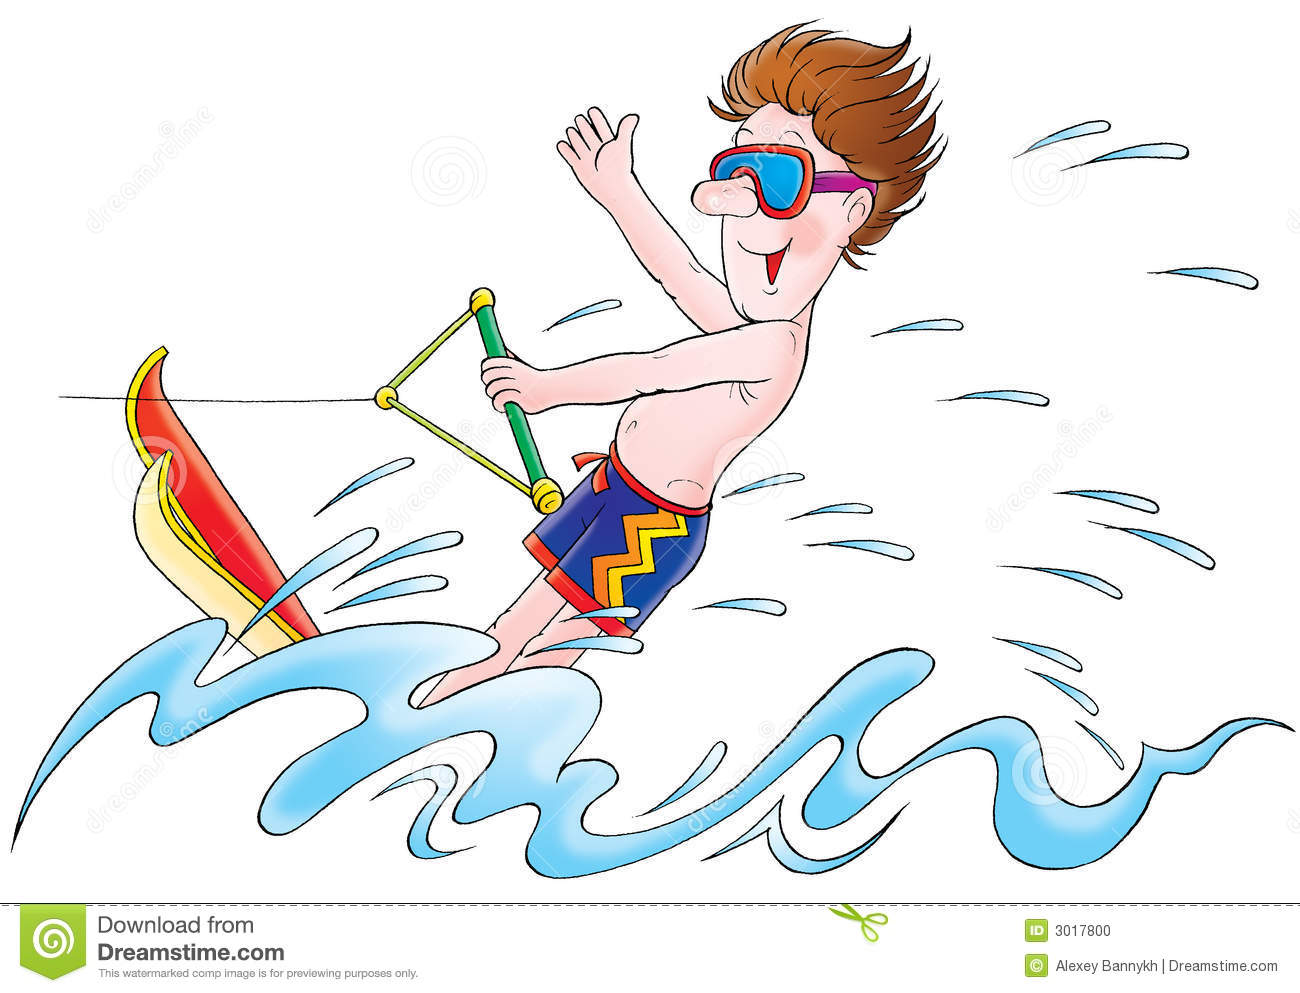 Water skiing clipart 6 » Clipart Station.